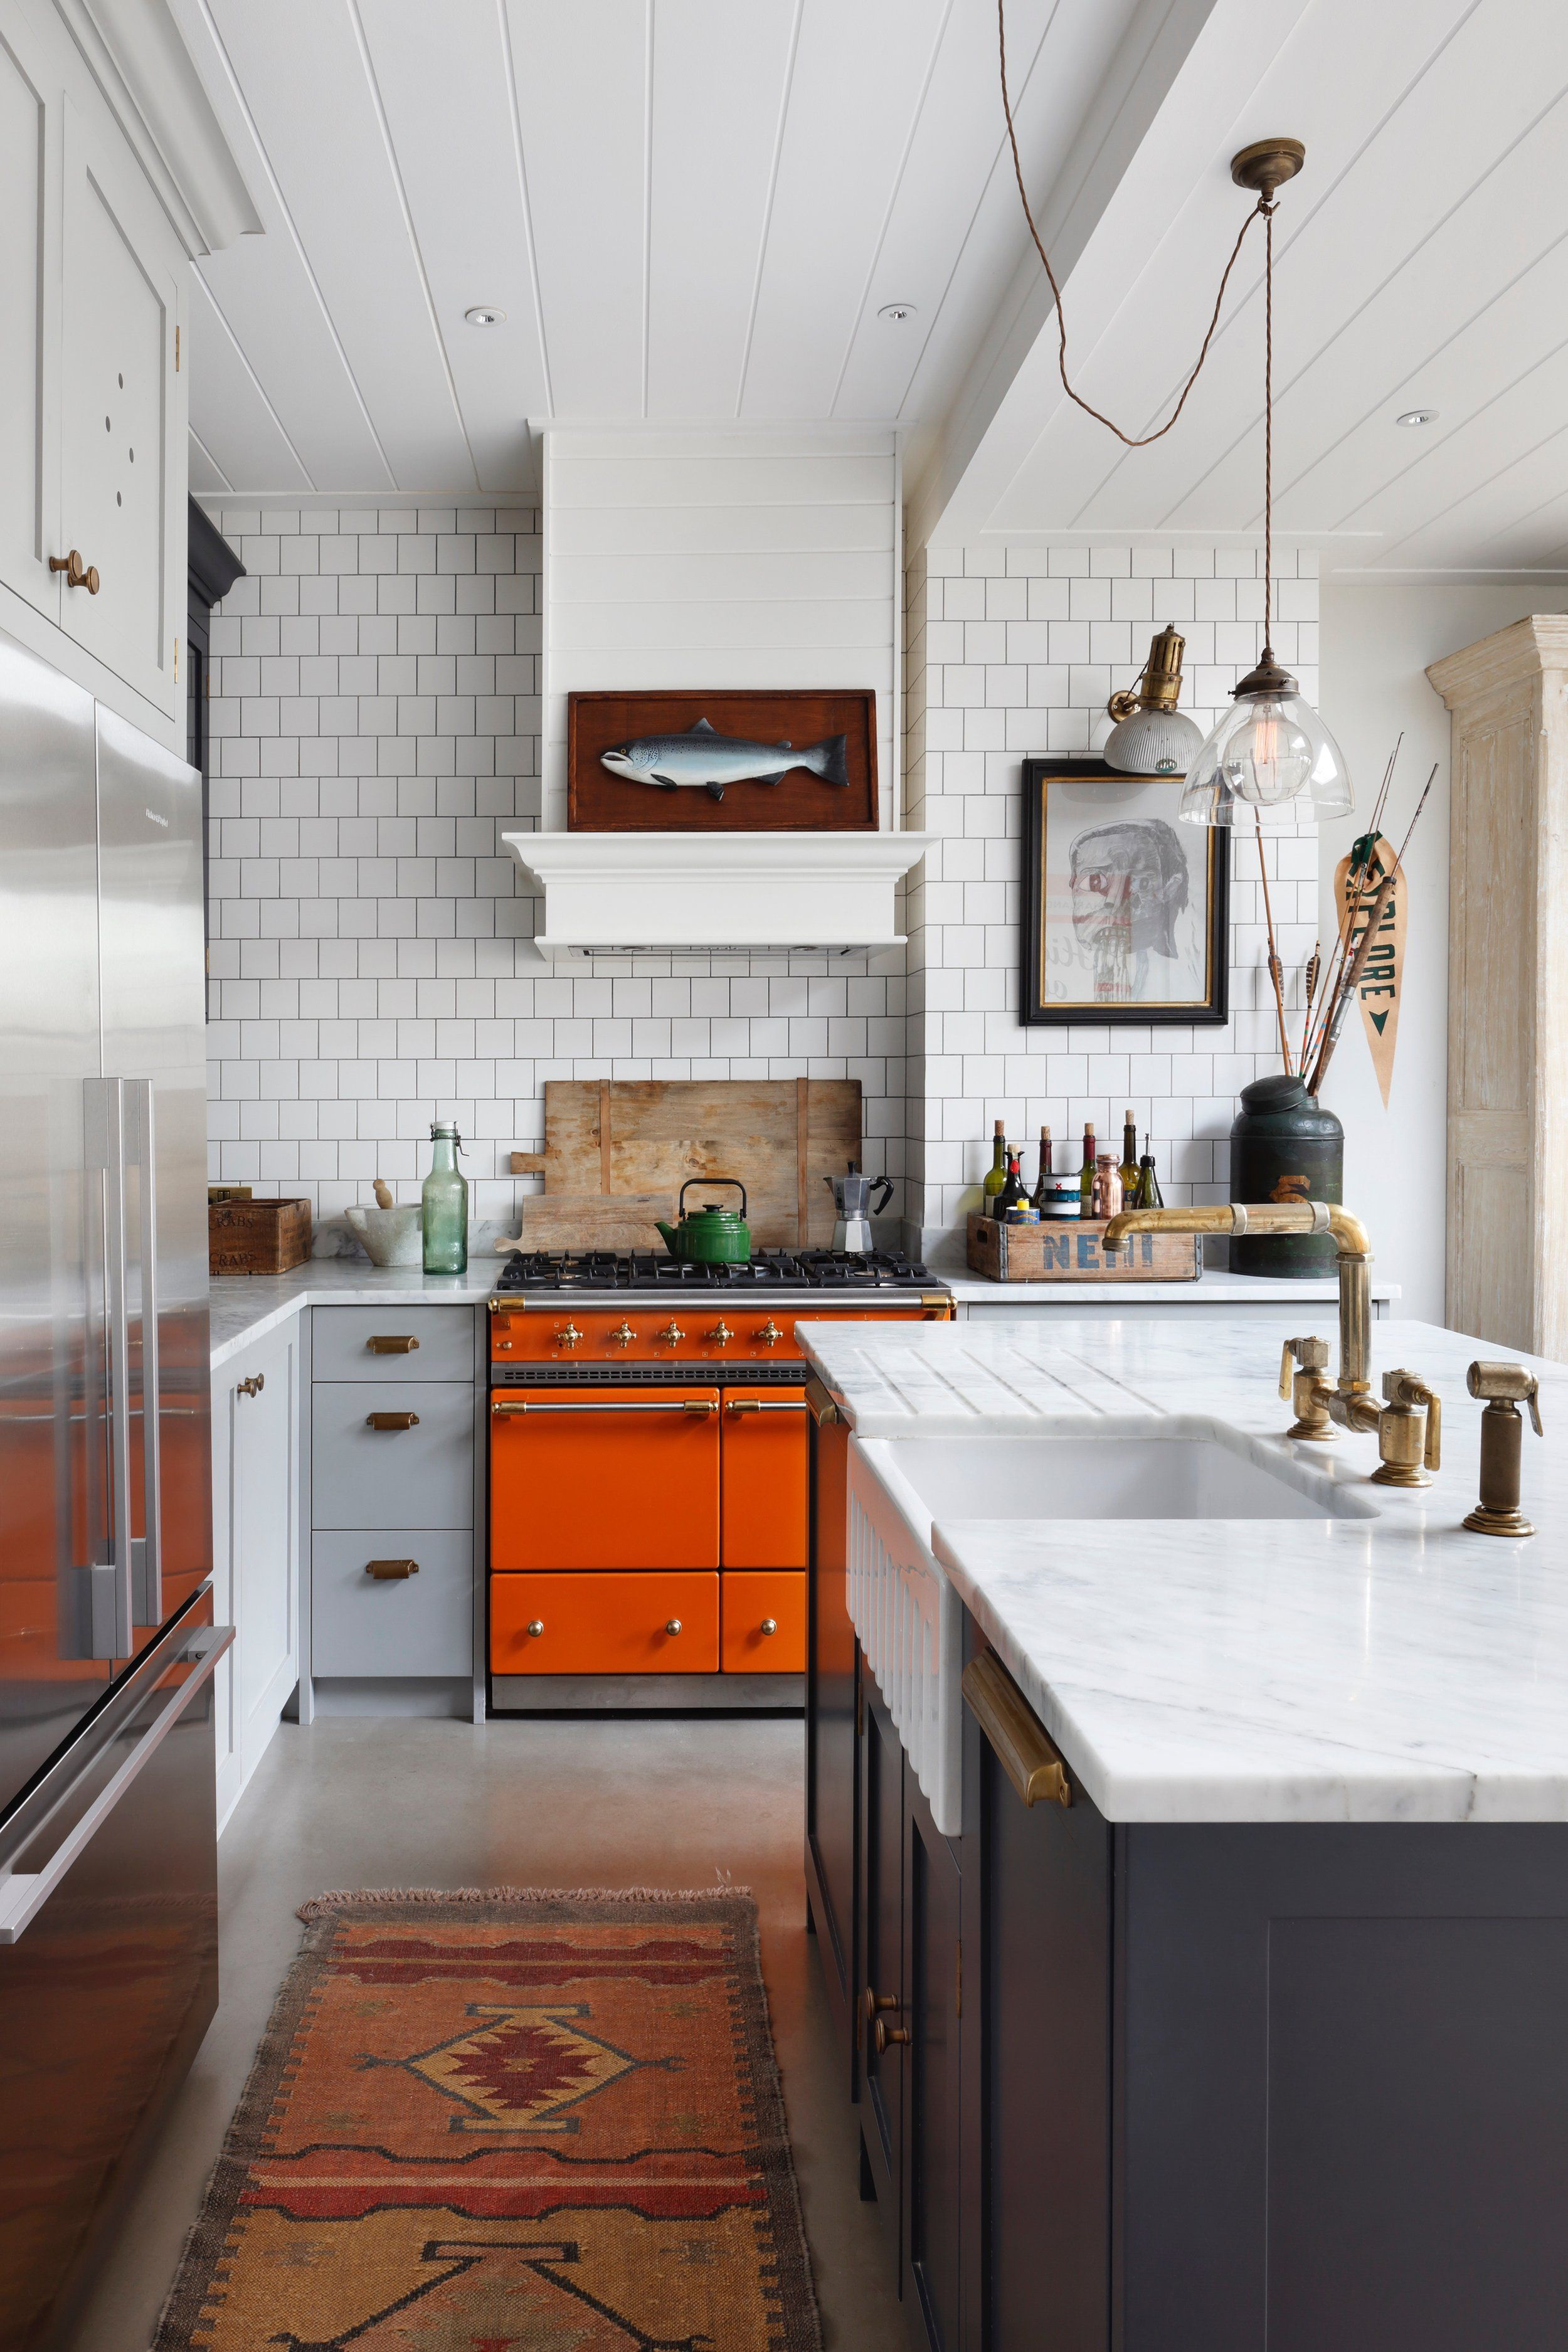 Eclectic Modern Kitchen With Orange Range Kitchen Renovation